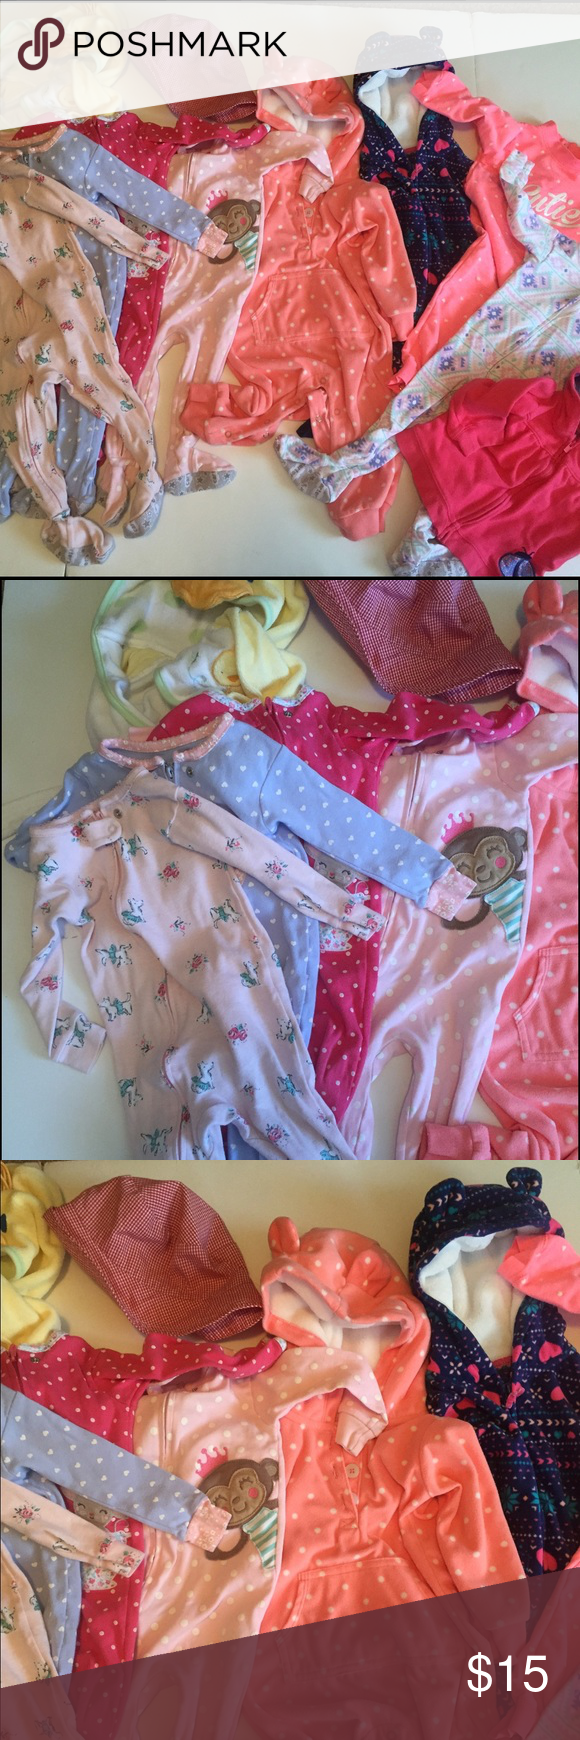 Bundle 12-18 mo Girls One Piece Winter Fall PJs Bundle 12-18 mo Girls One Piece Winter Fall Outfits Carter's Long Sleeve Footed PJs Sleepers Bathrobe Lot of 10?pieces Excellent to Very Good Condition 🚫 Trades Carter's Pajamas